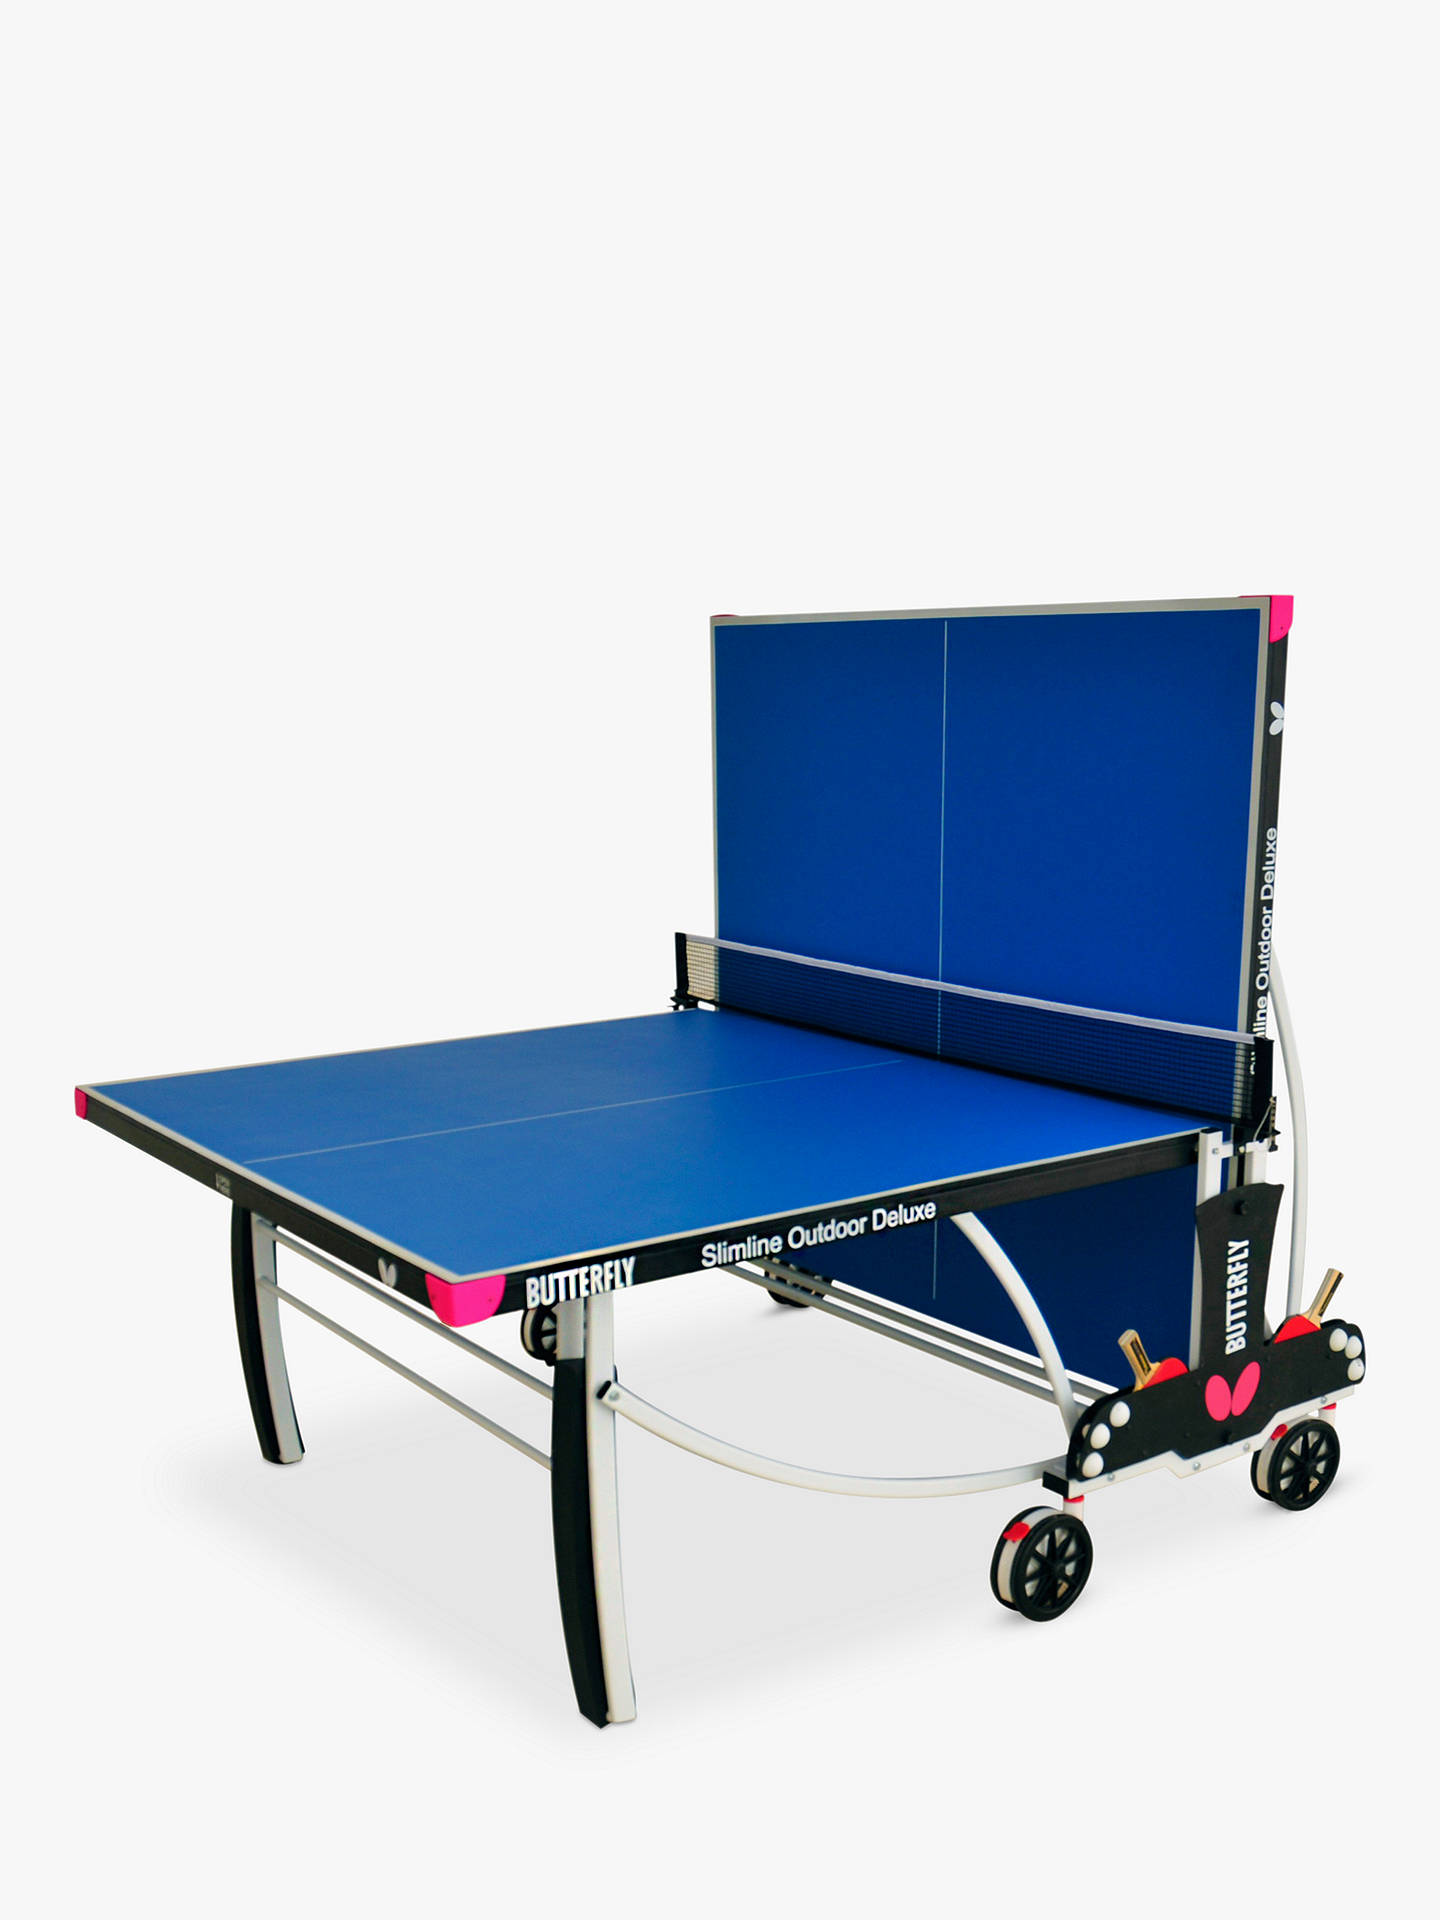 Buy Butterfly Slimline Deluxe Outdoor Table Tennis Table Online at johnlewis.com